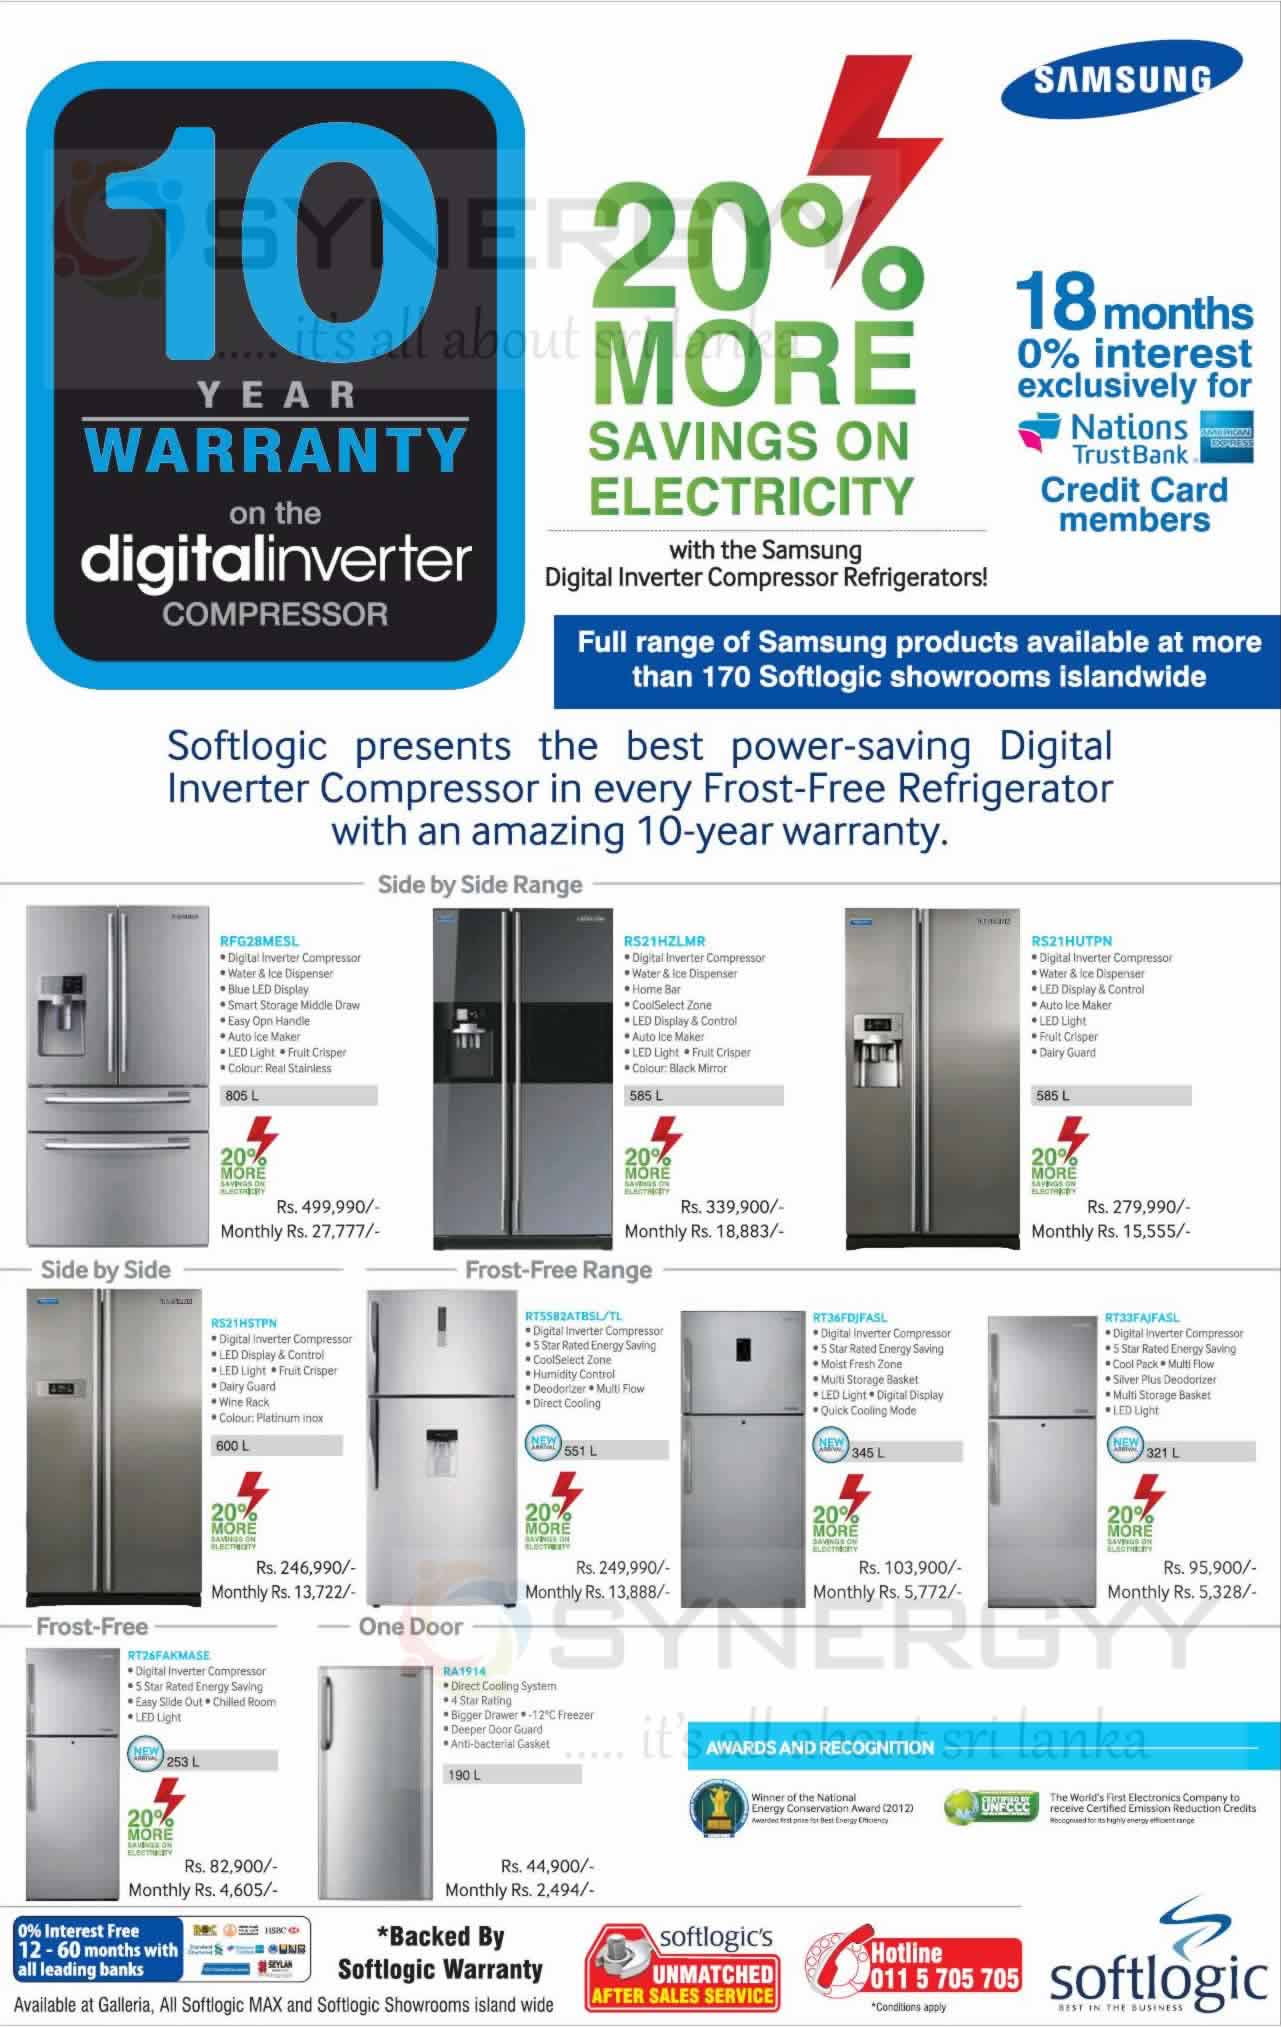 Samsung Refrigerators with 10 years warranty from Softlogic